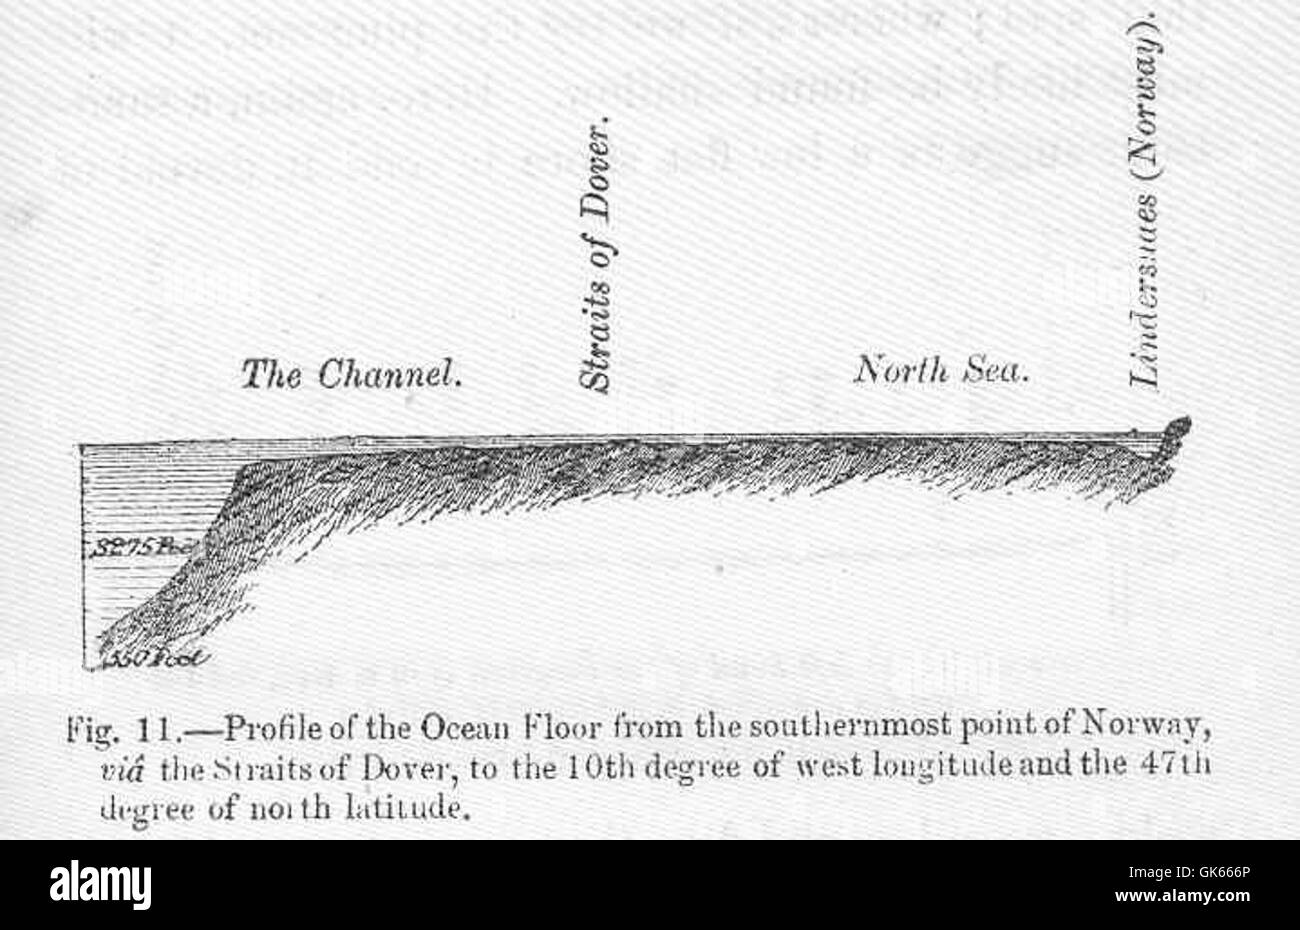 49949 Profile of the Ocean Floor from the southernmost point of Norway, via  the Straits of Dover, to the 10th degree of west longitude